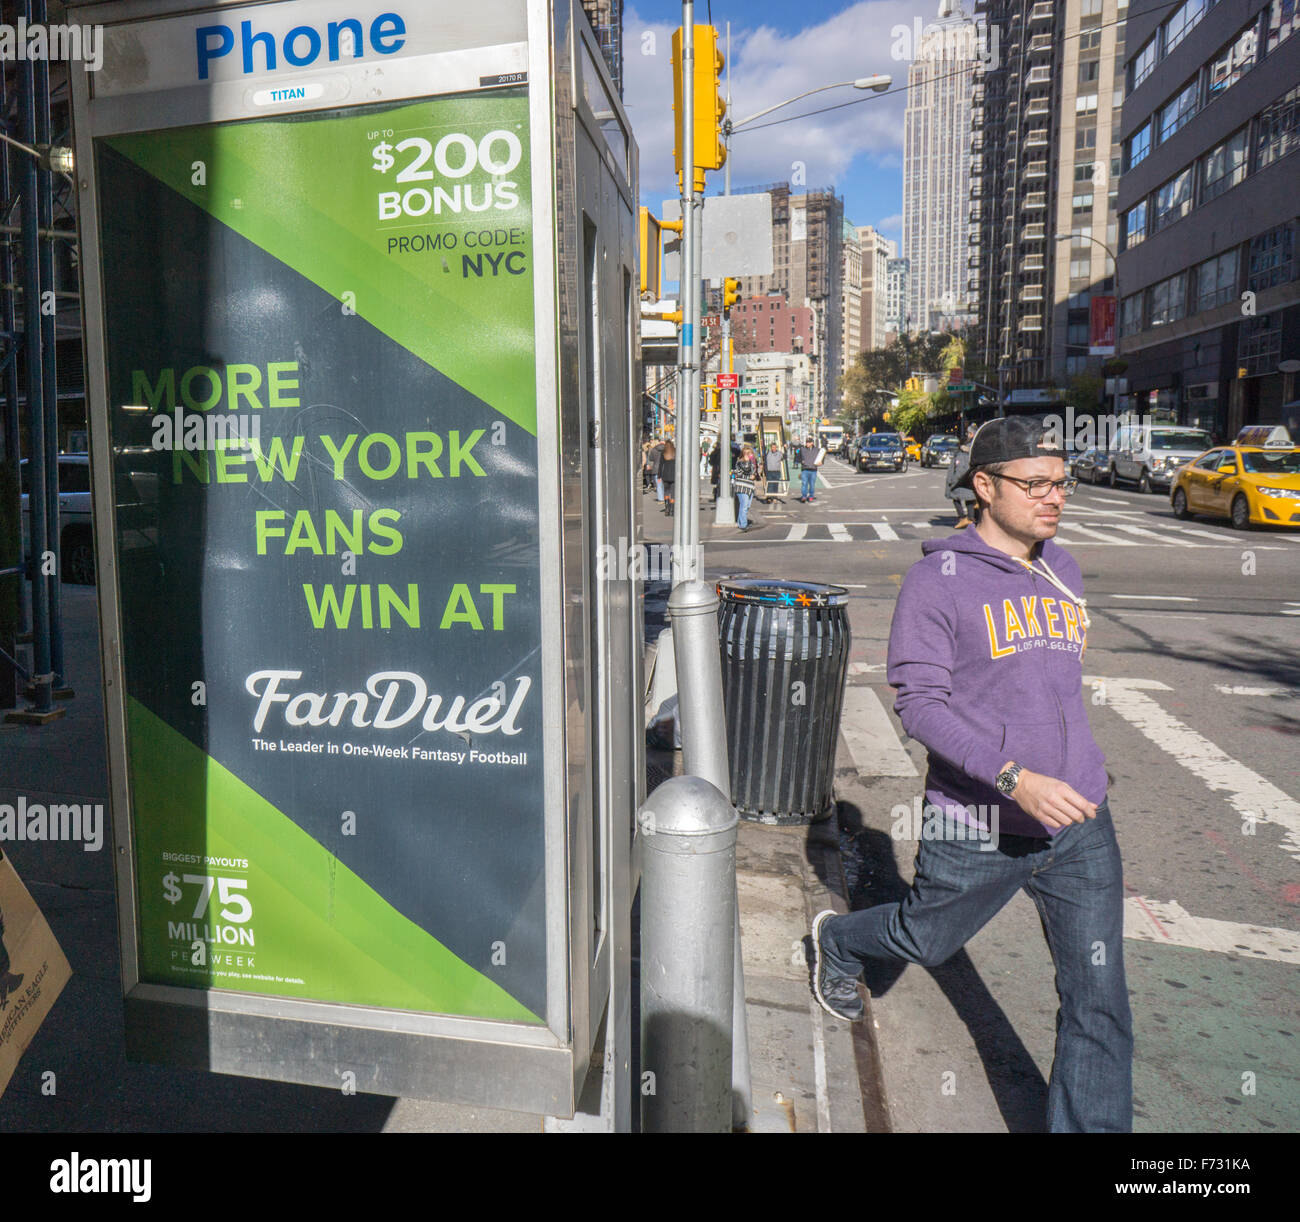 Advertising for the FanDuel fantasy football website in New York on Saturday, November 14, 2015. FanDuel and other - Stock Image